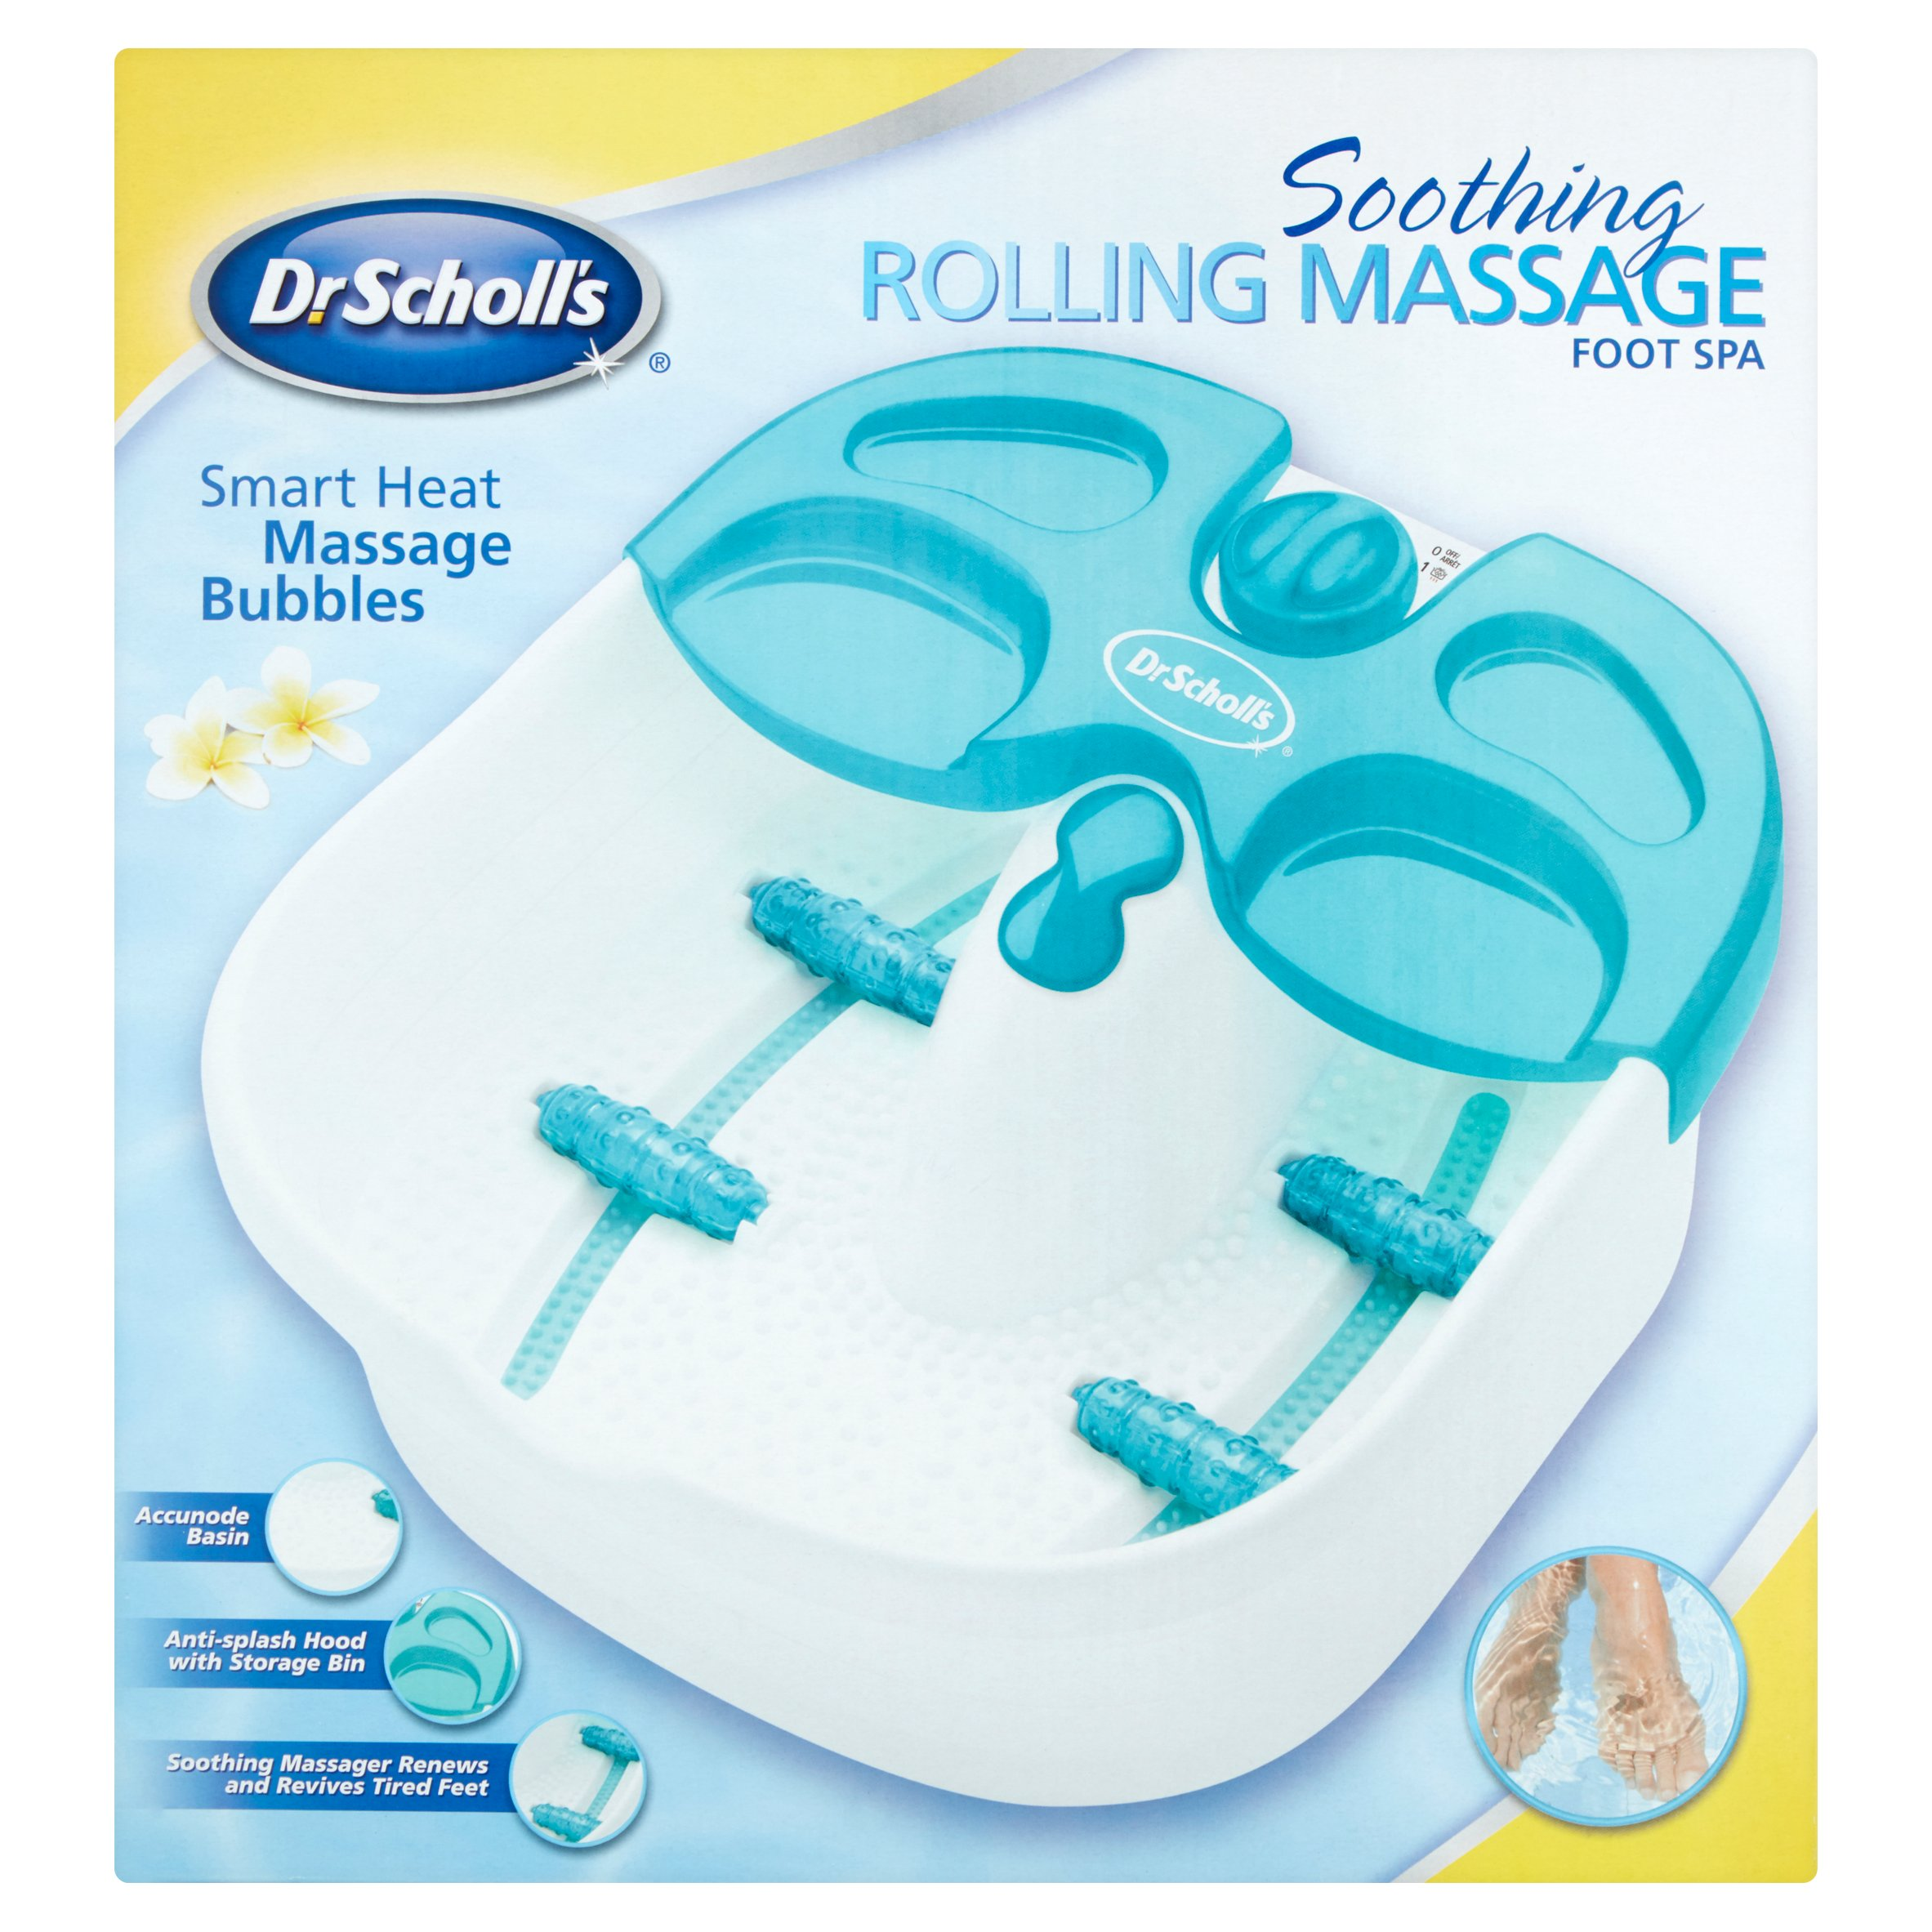 Dr Scholl's Soothing Rolling Massage Foot Spa